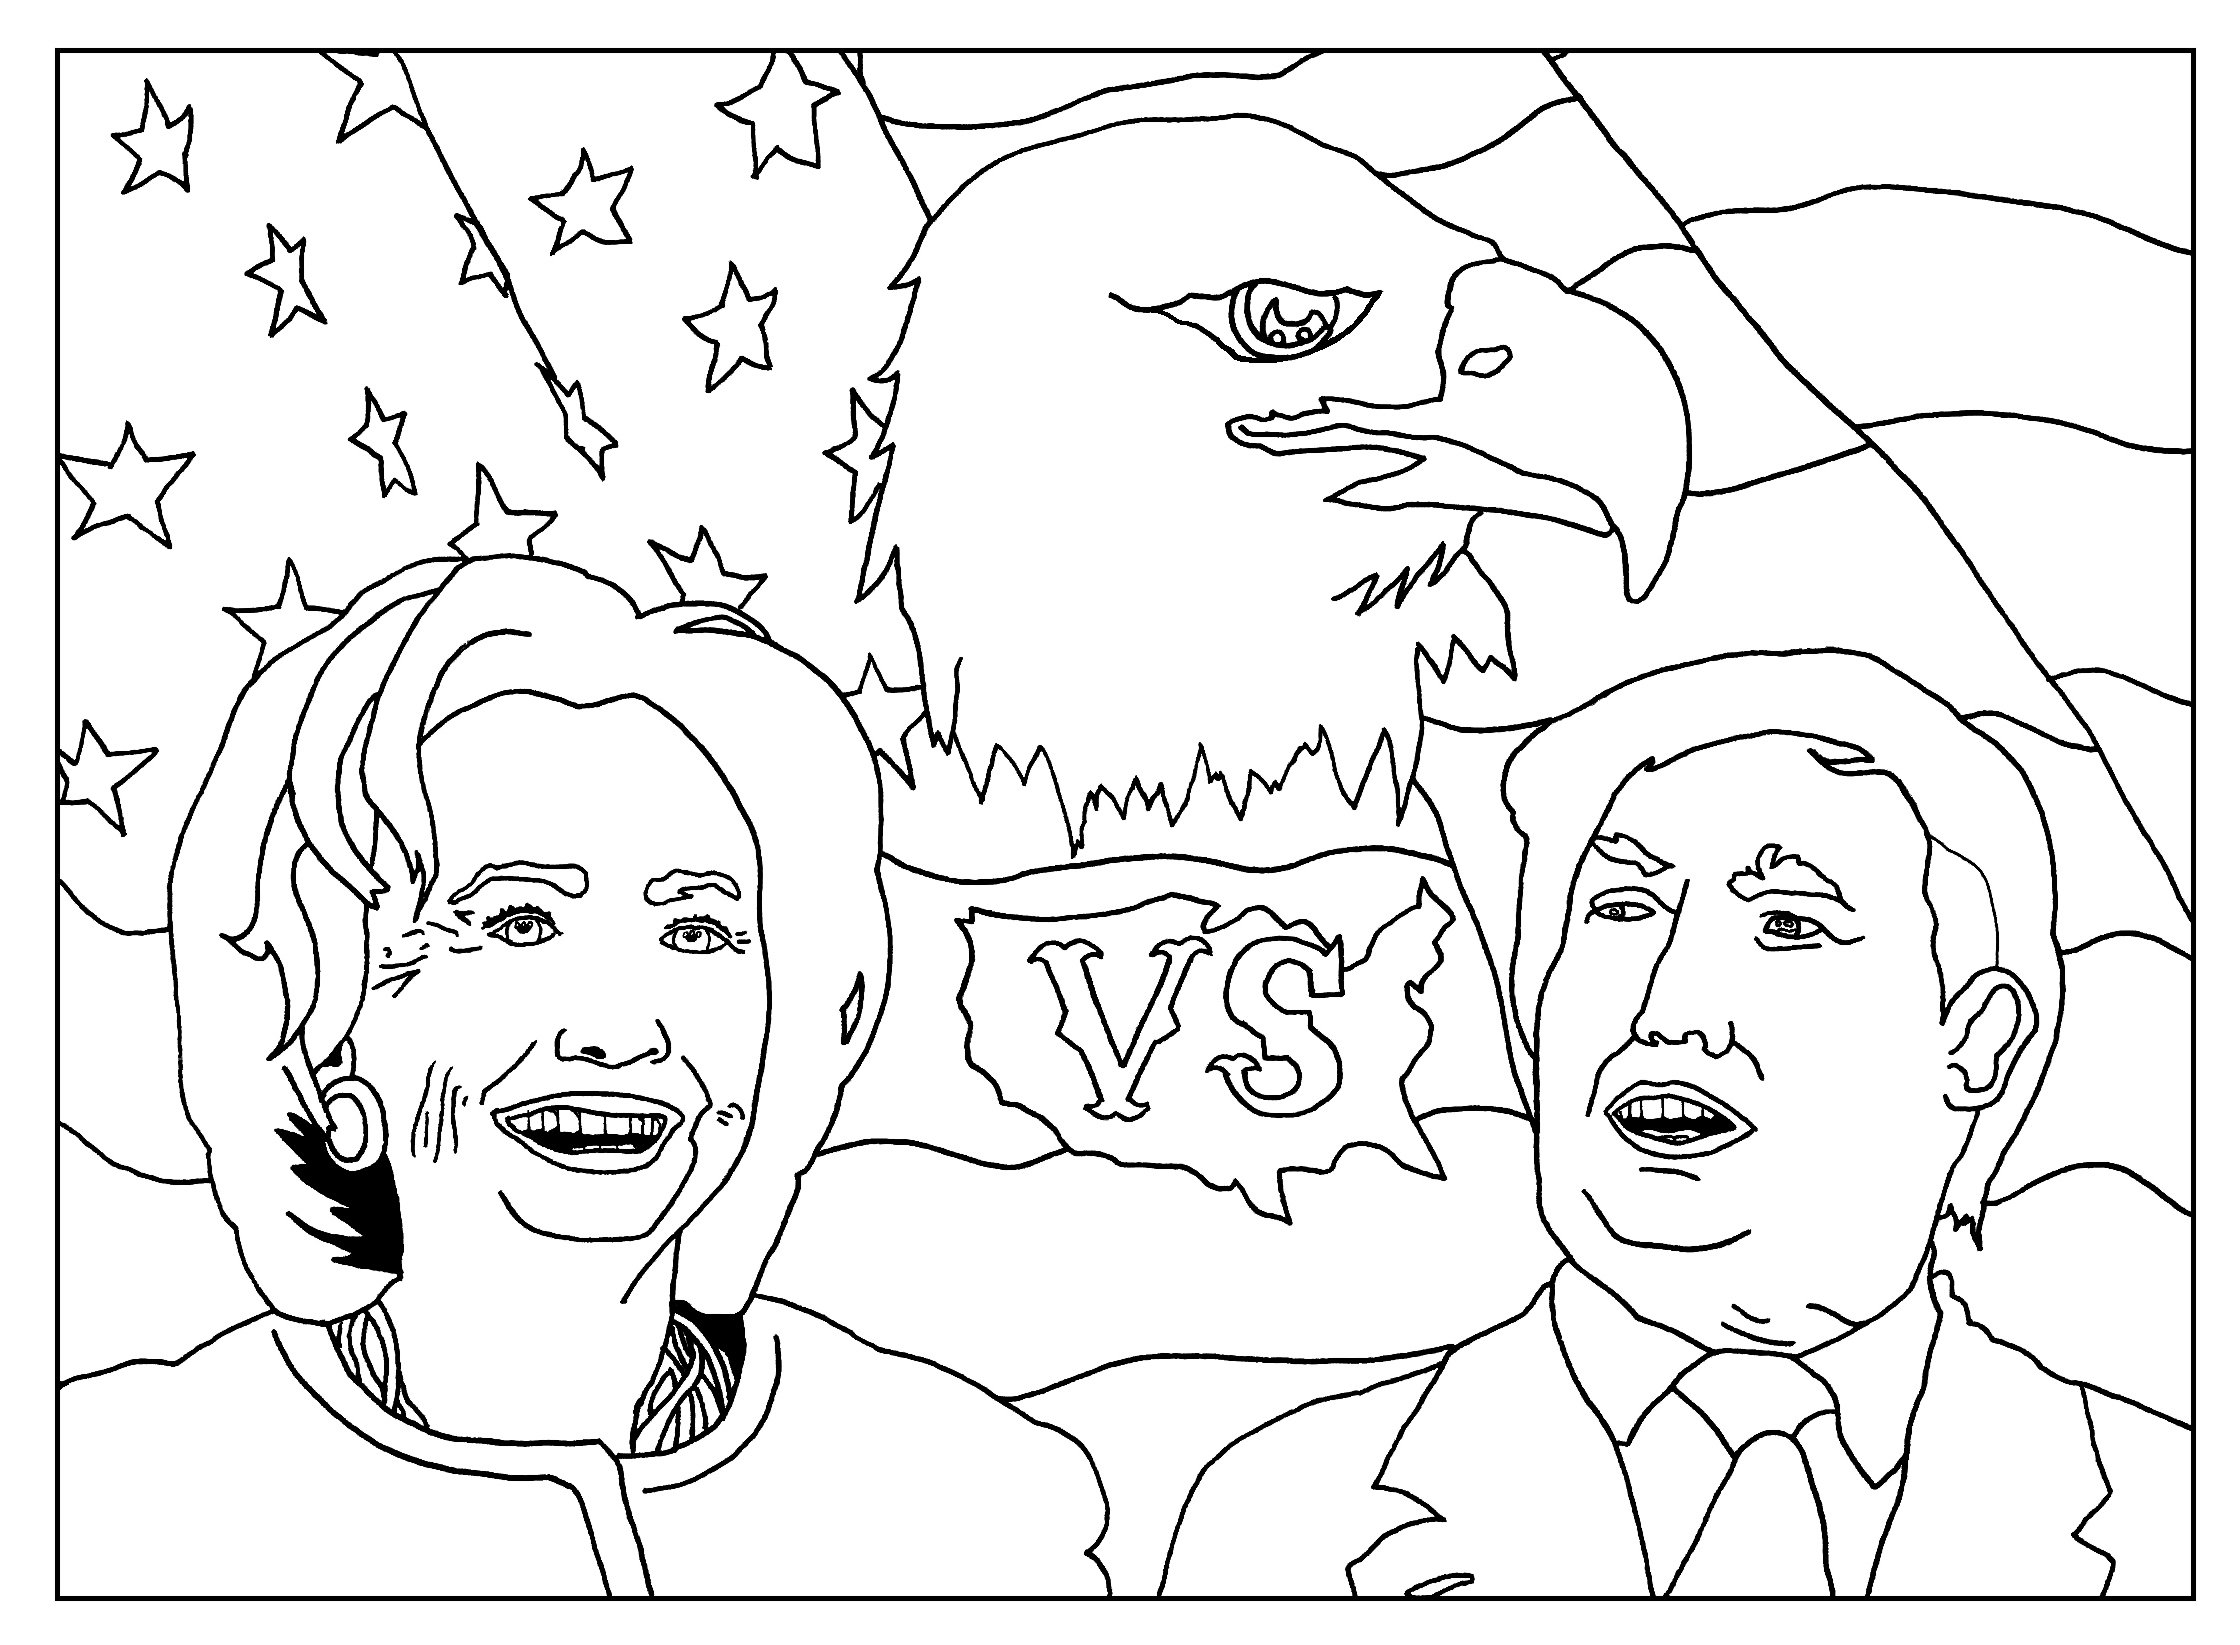 Hillary-vs-Donald-Trump-coloring-page